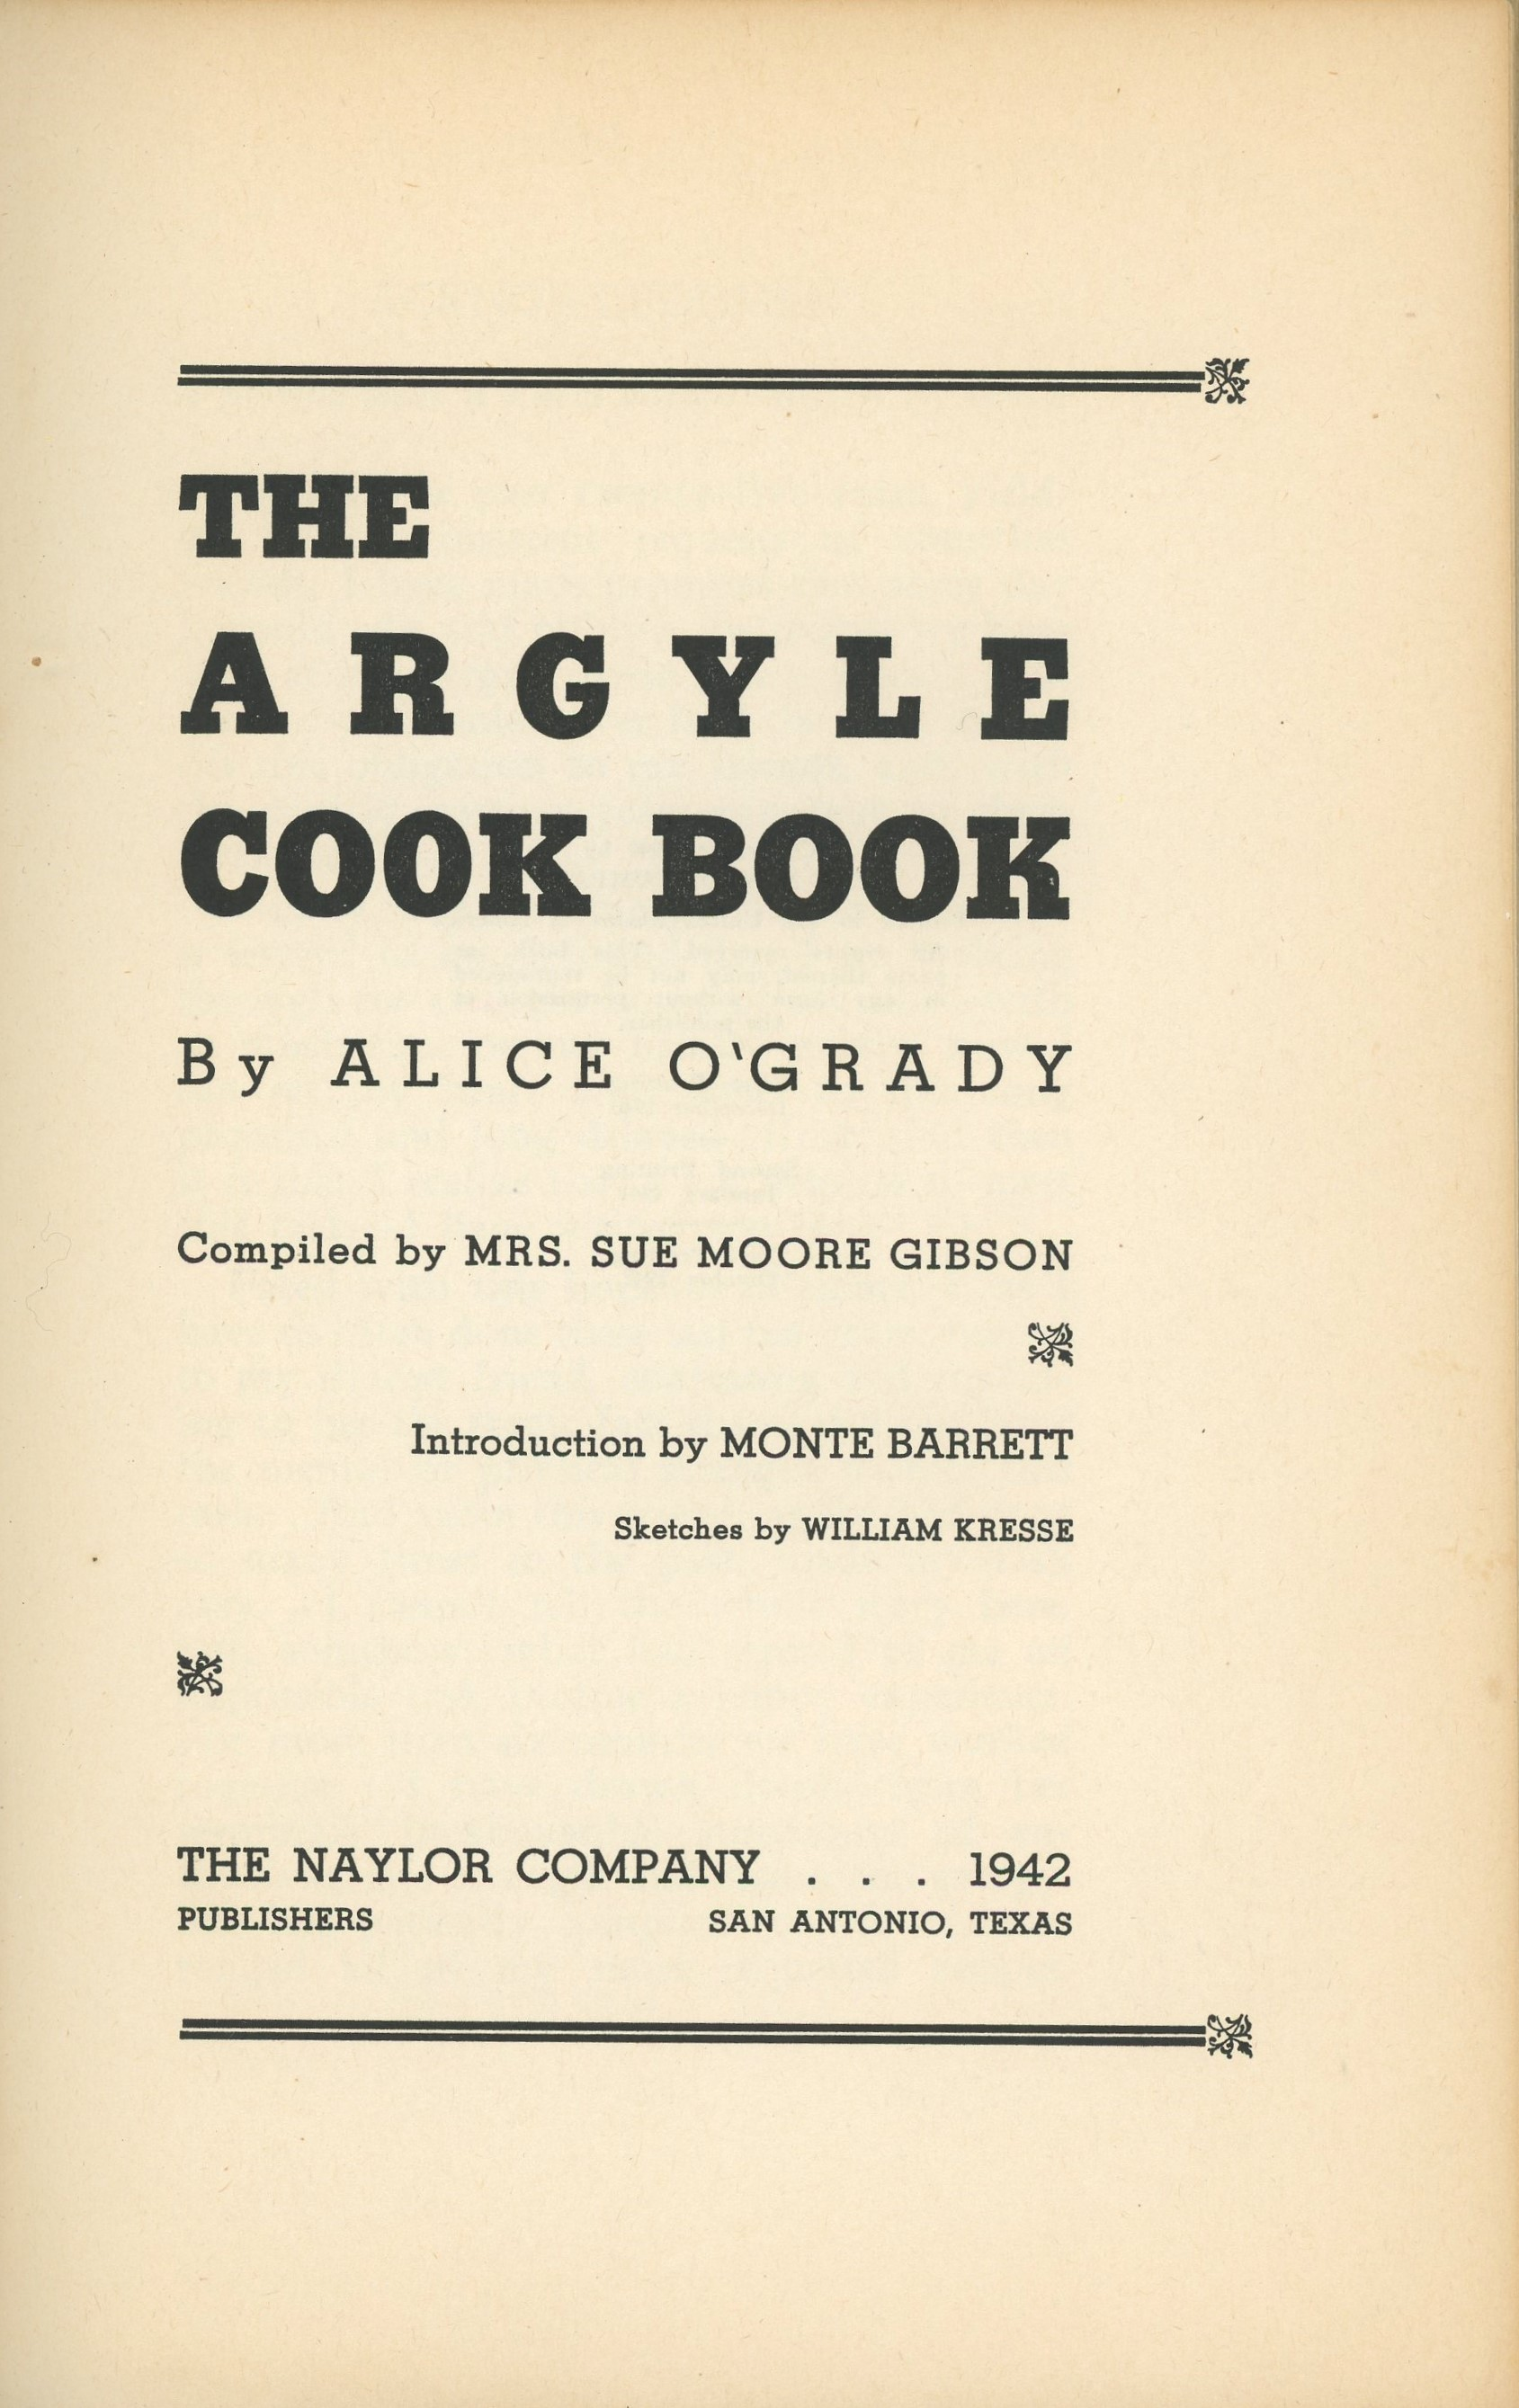 Cover for The Argyle cook book